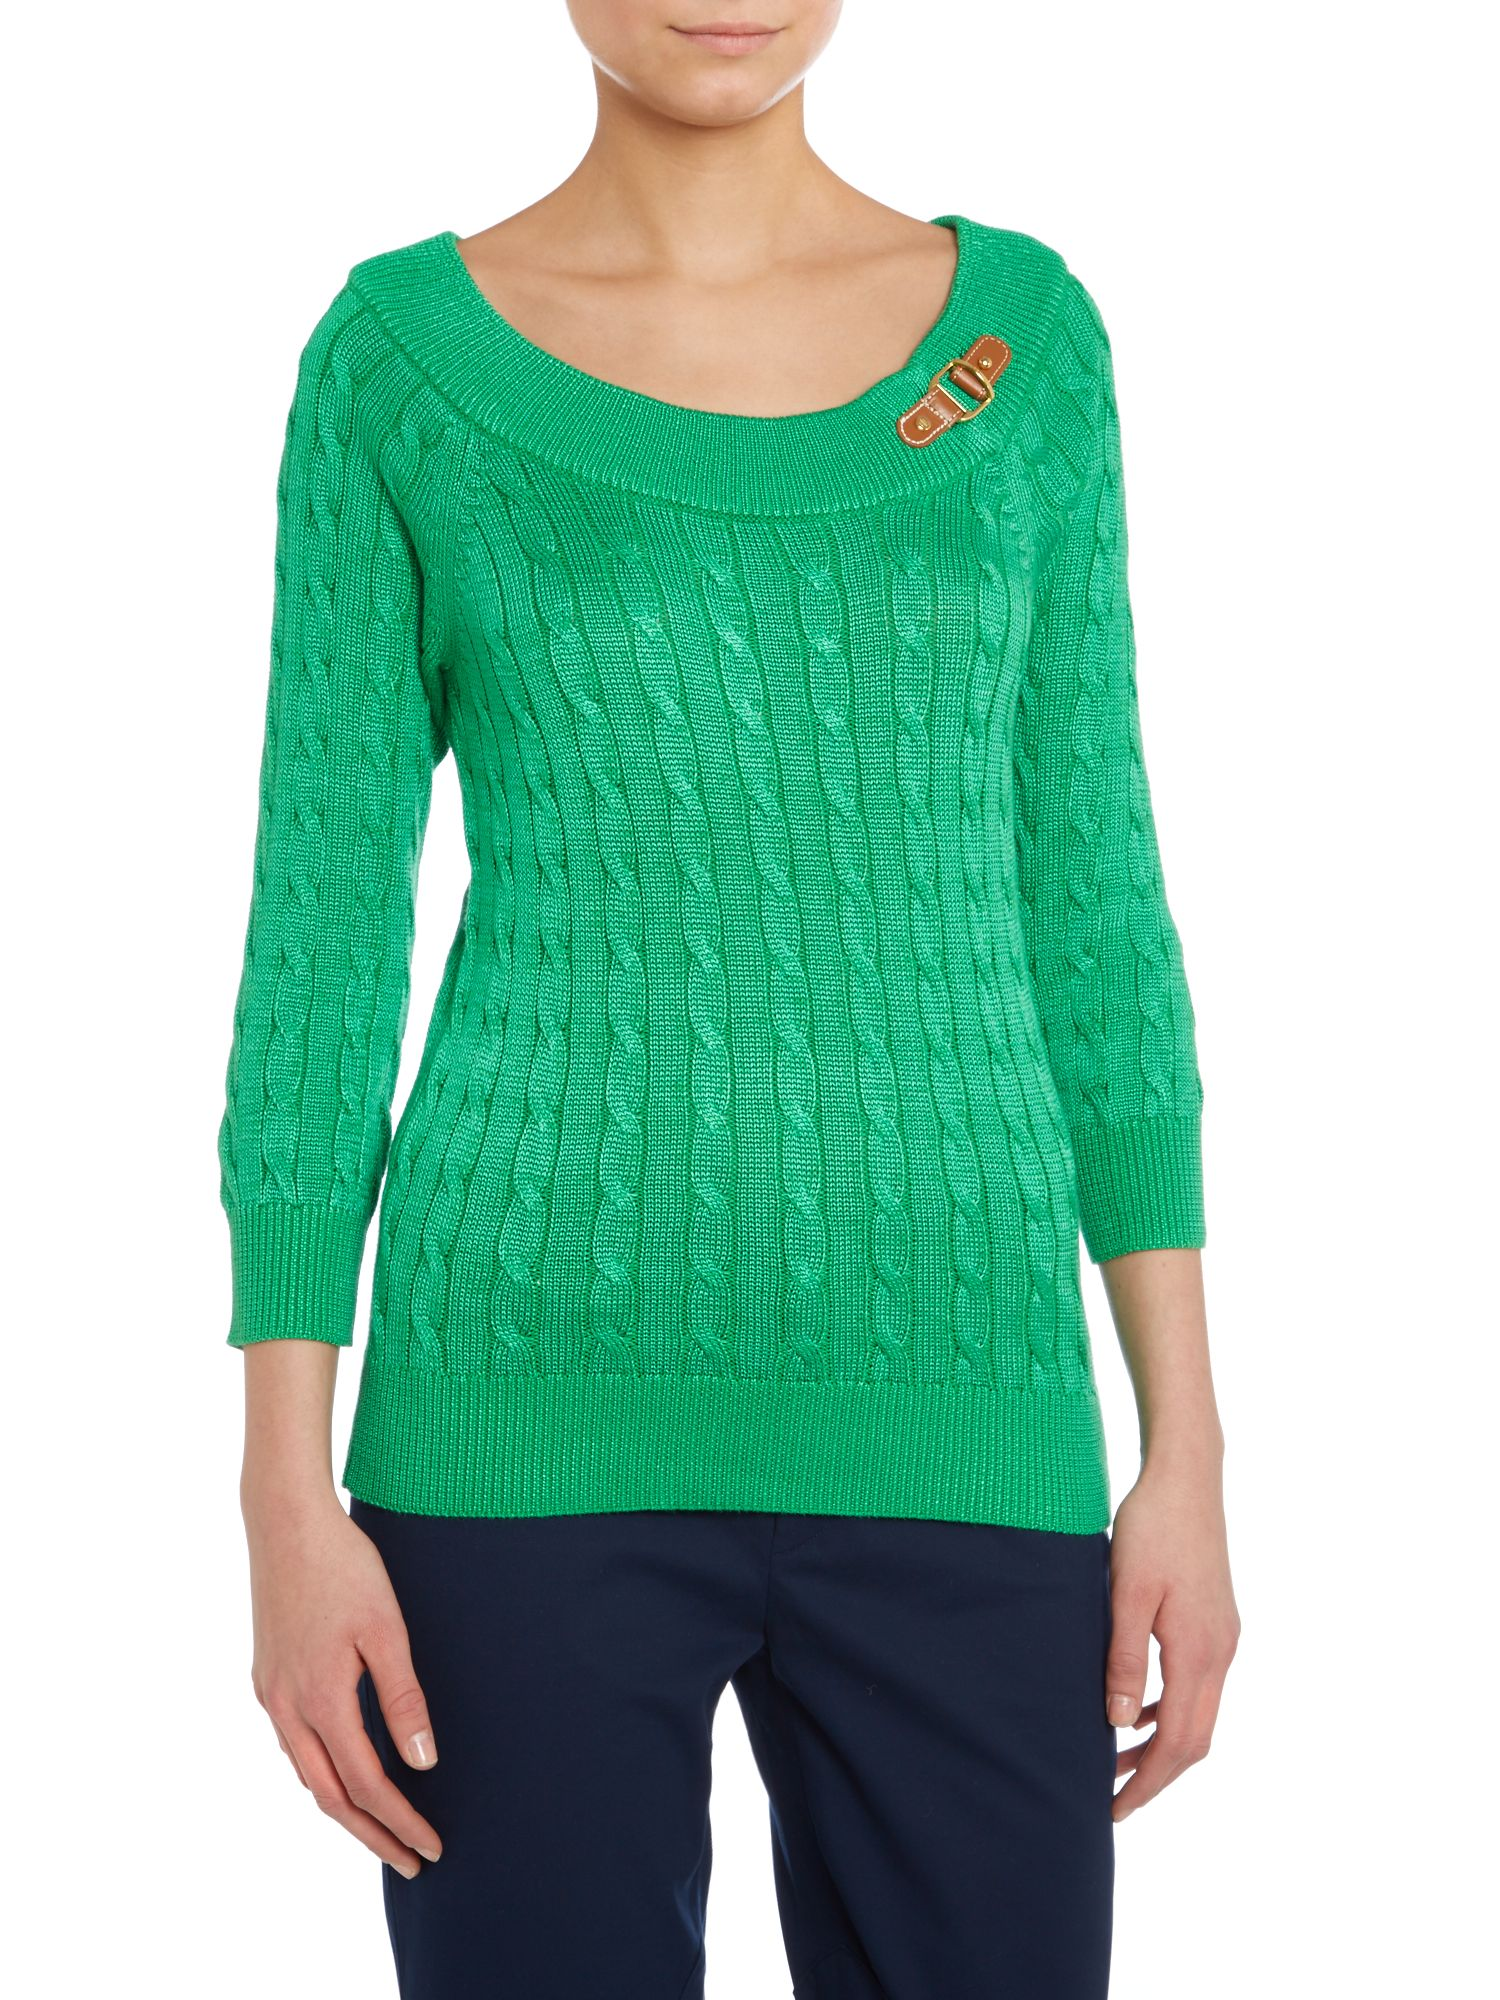 3/4 sleeved ballet neck raglan knit